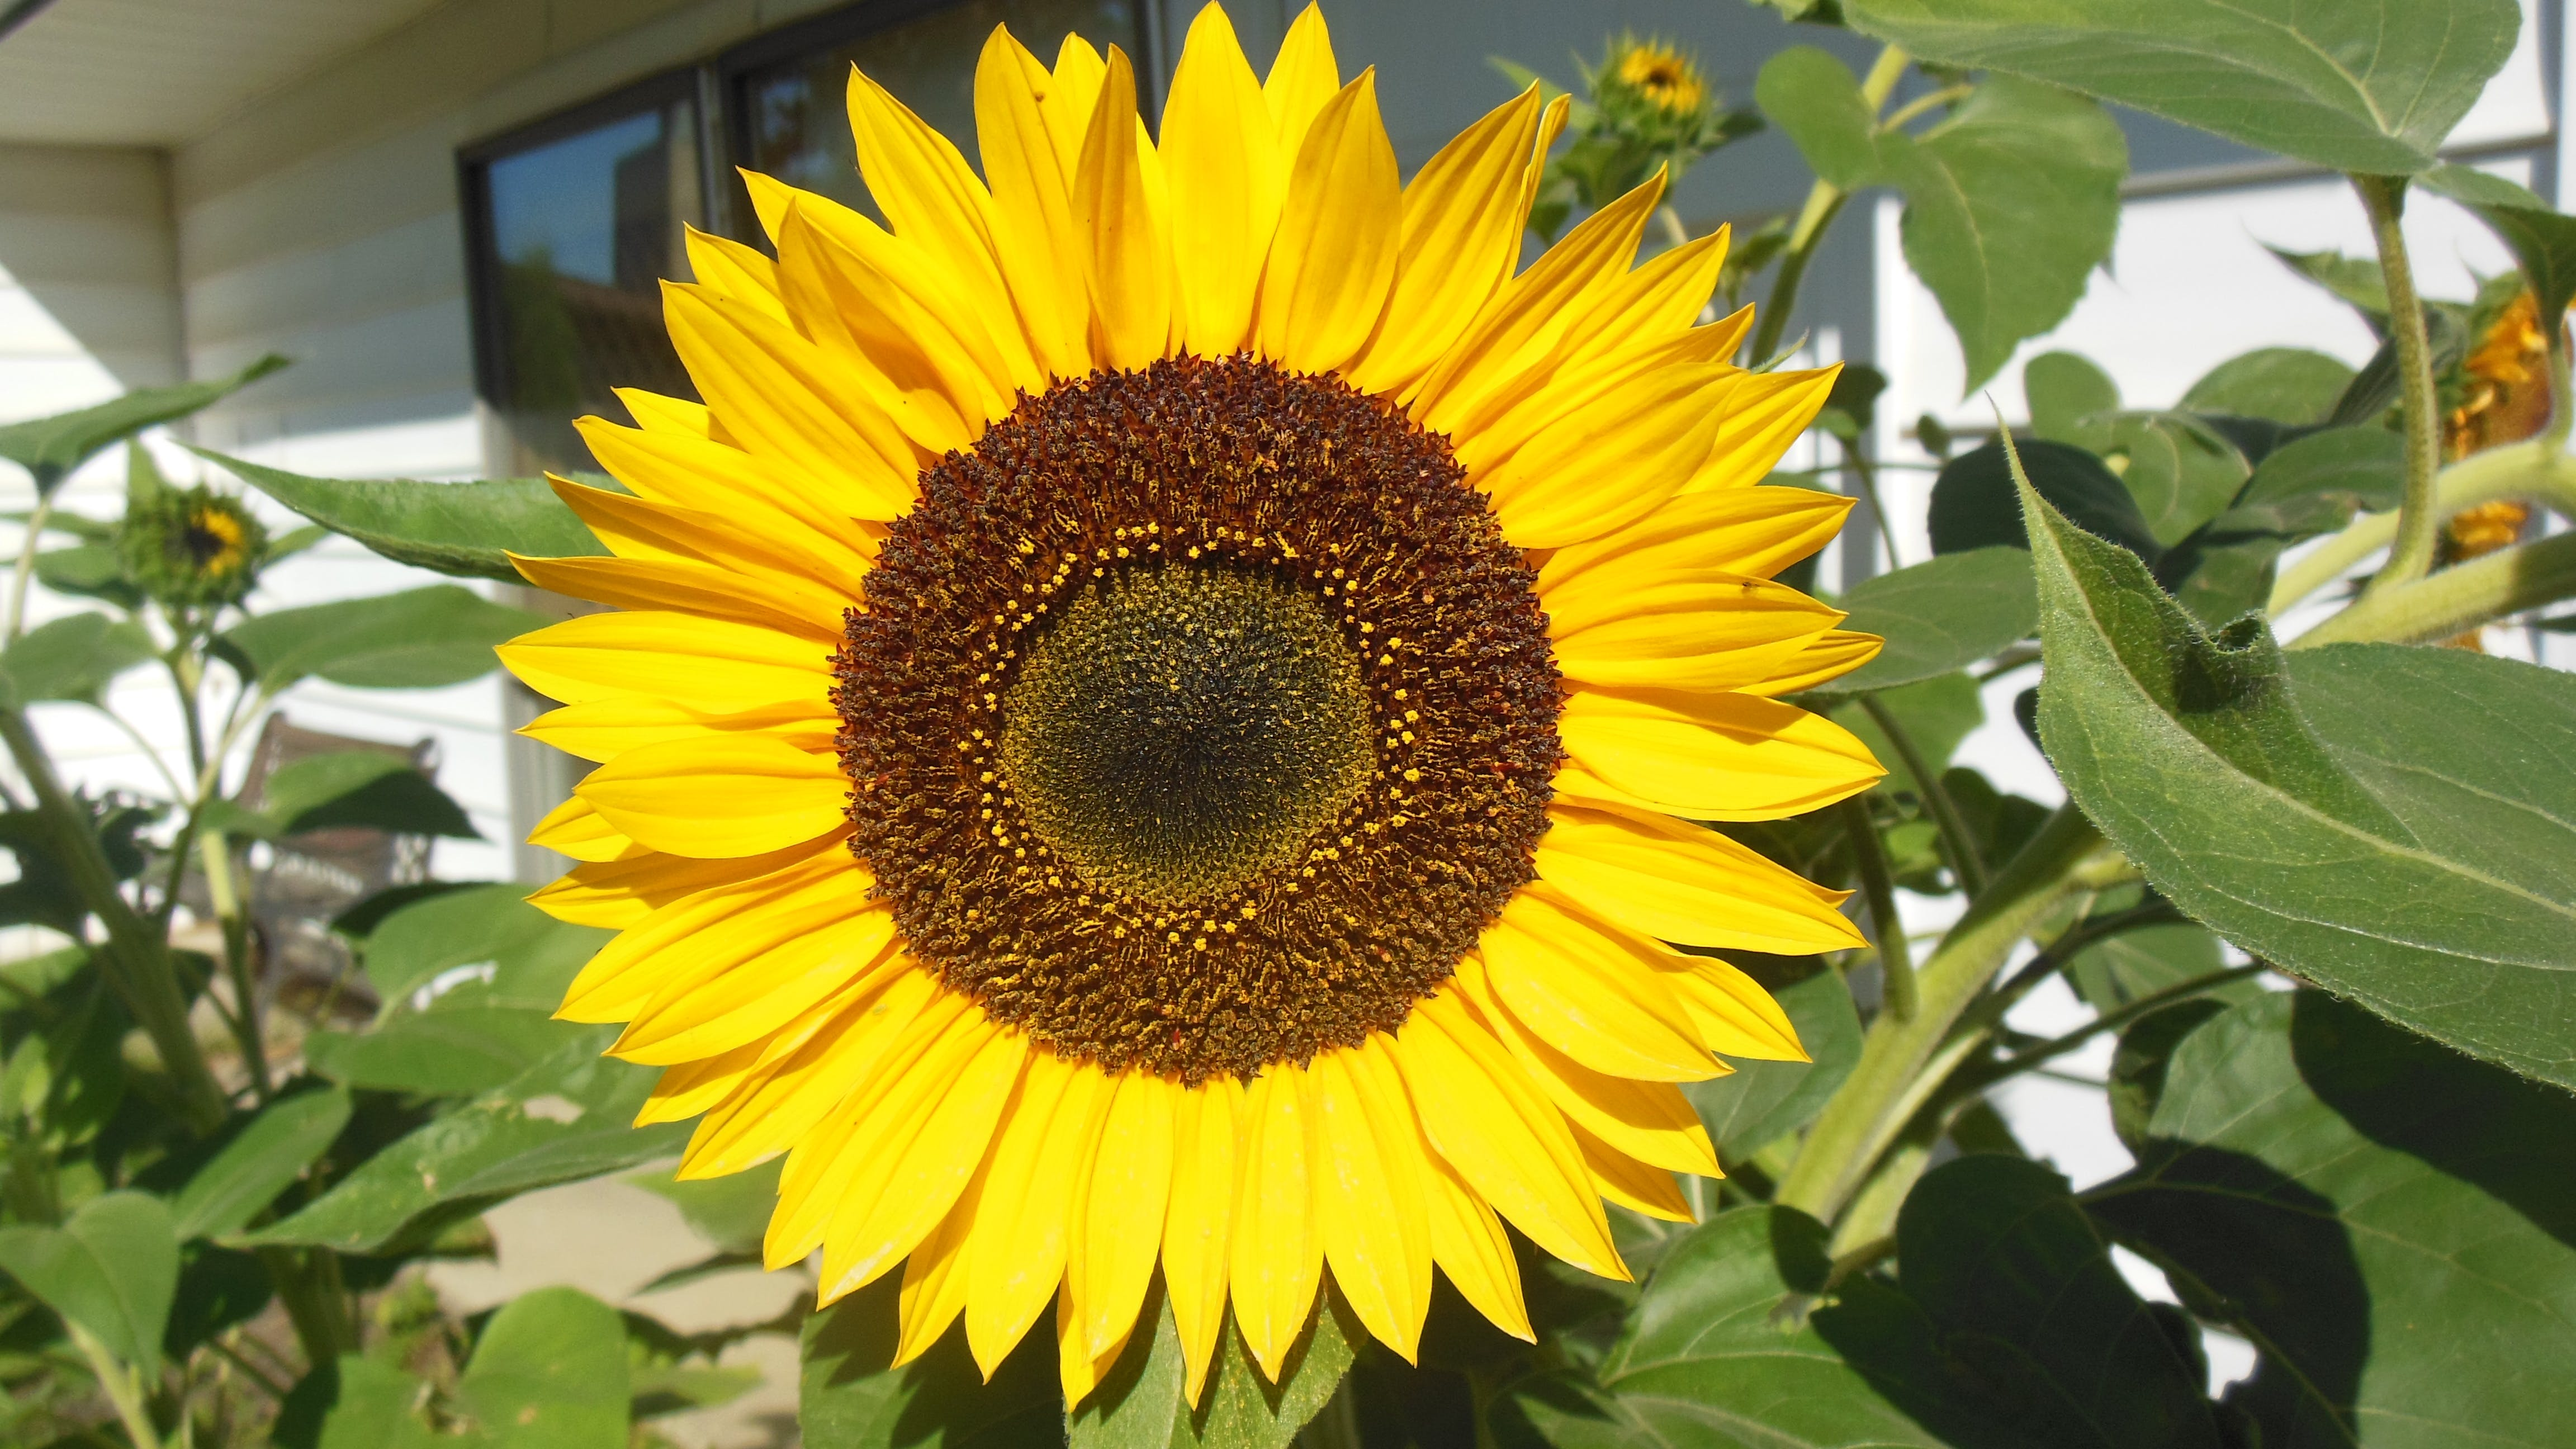 Free stock photo of blooming, full face sunflower, summer time